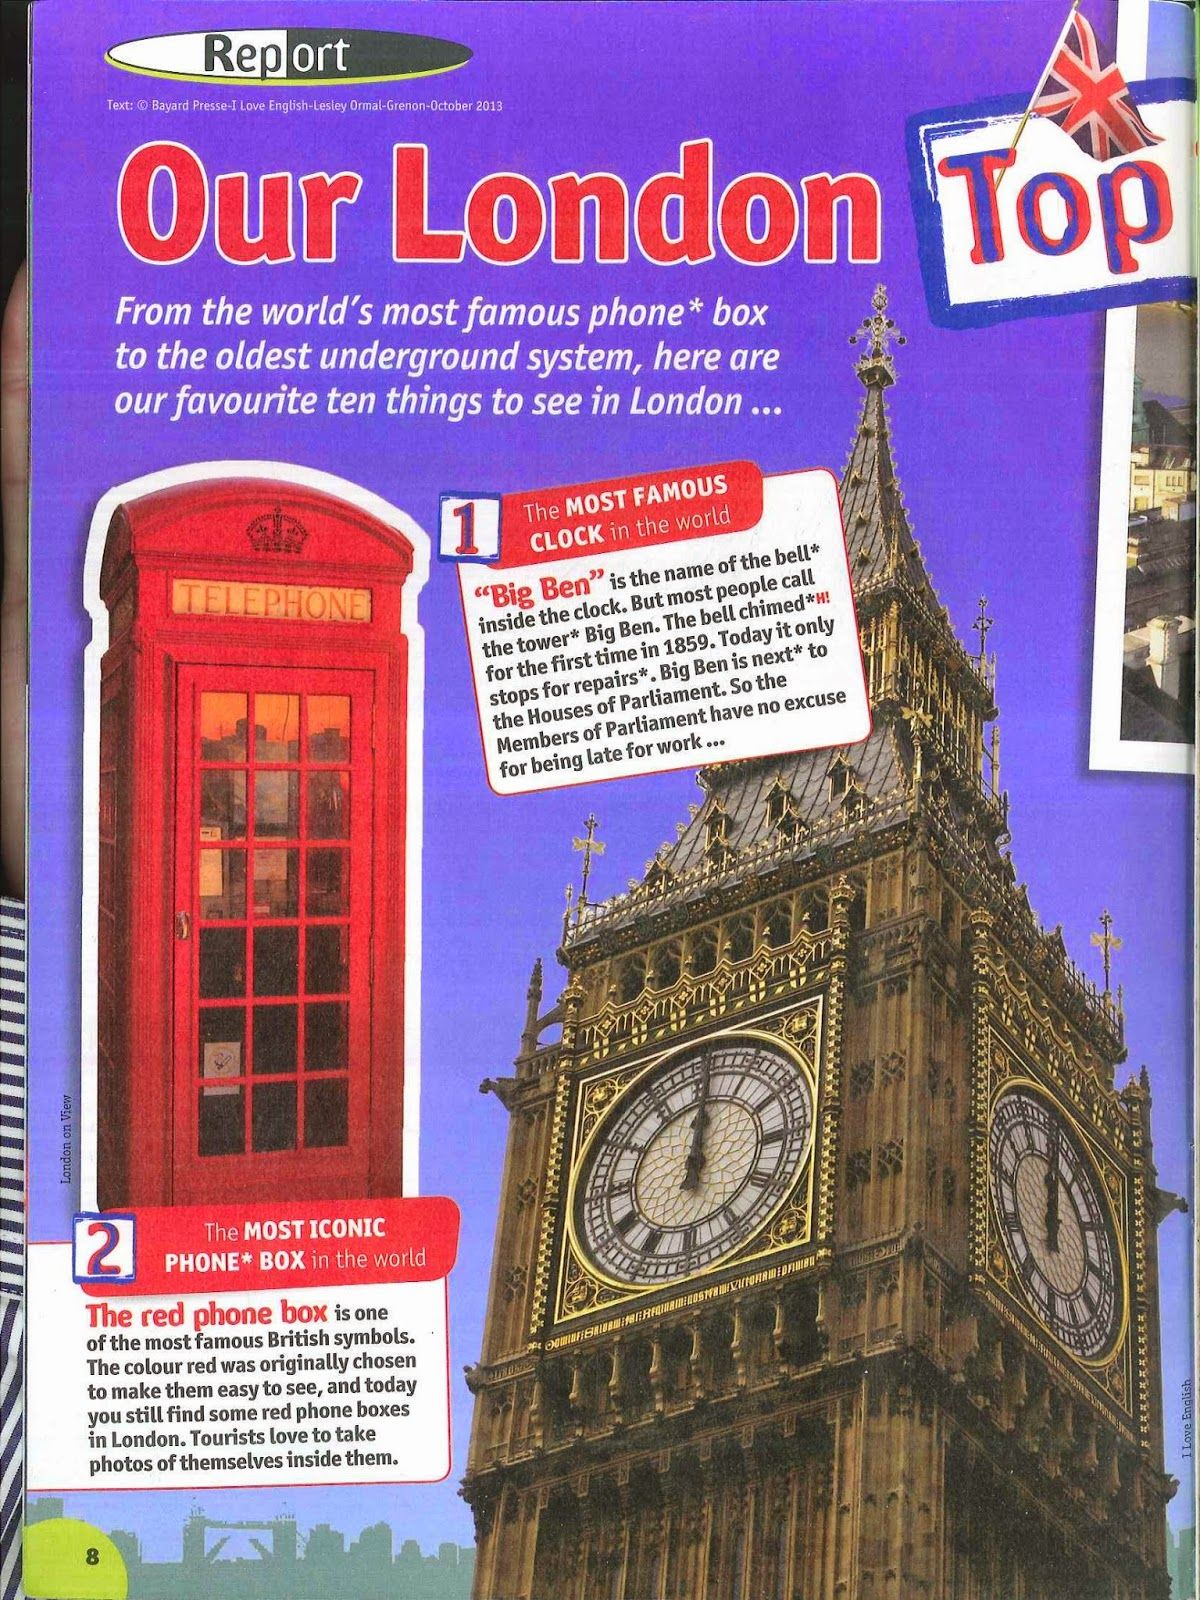 A lesson plan 10 things to see in London